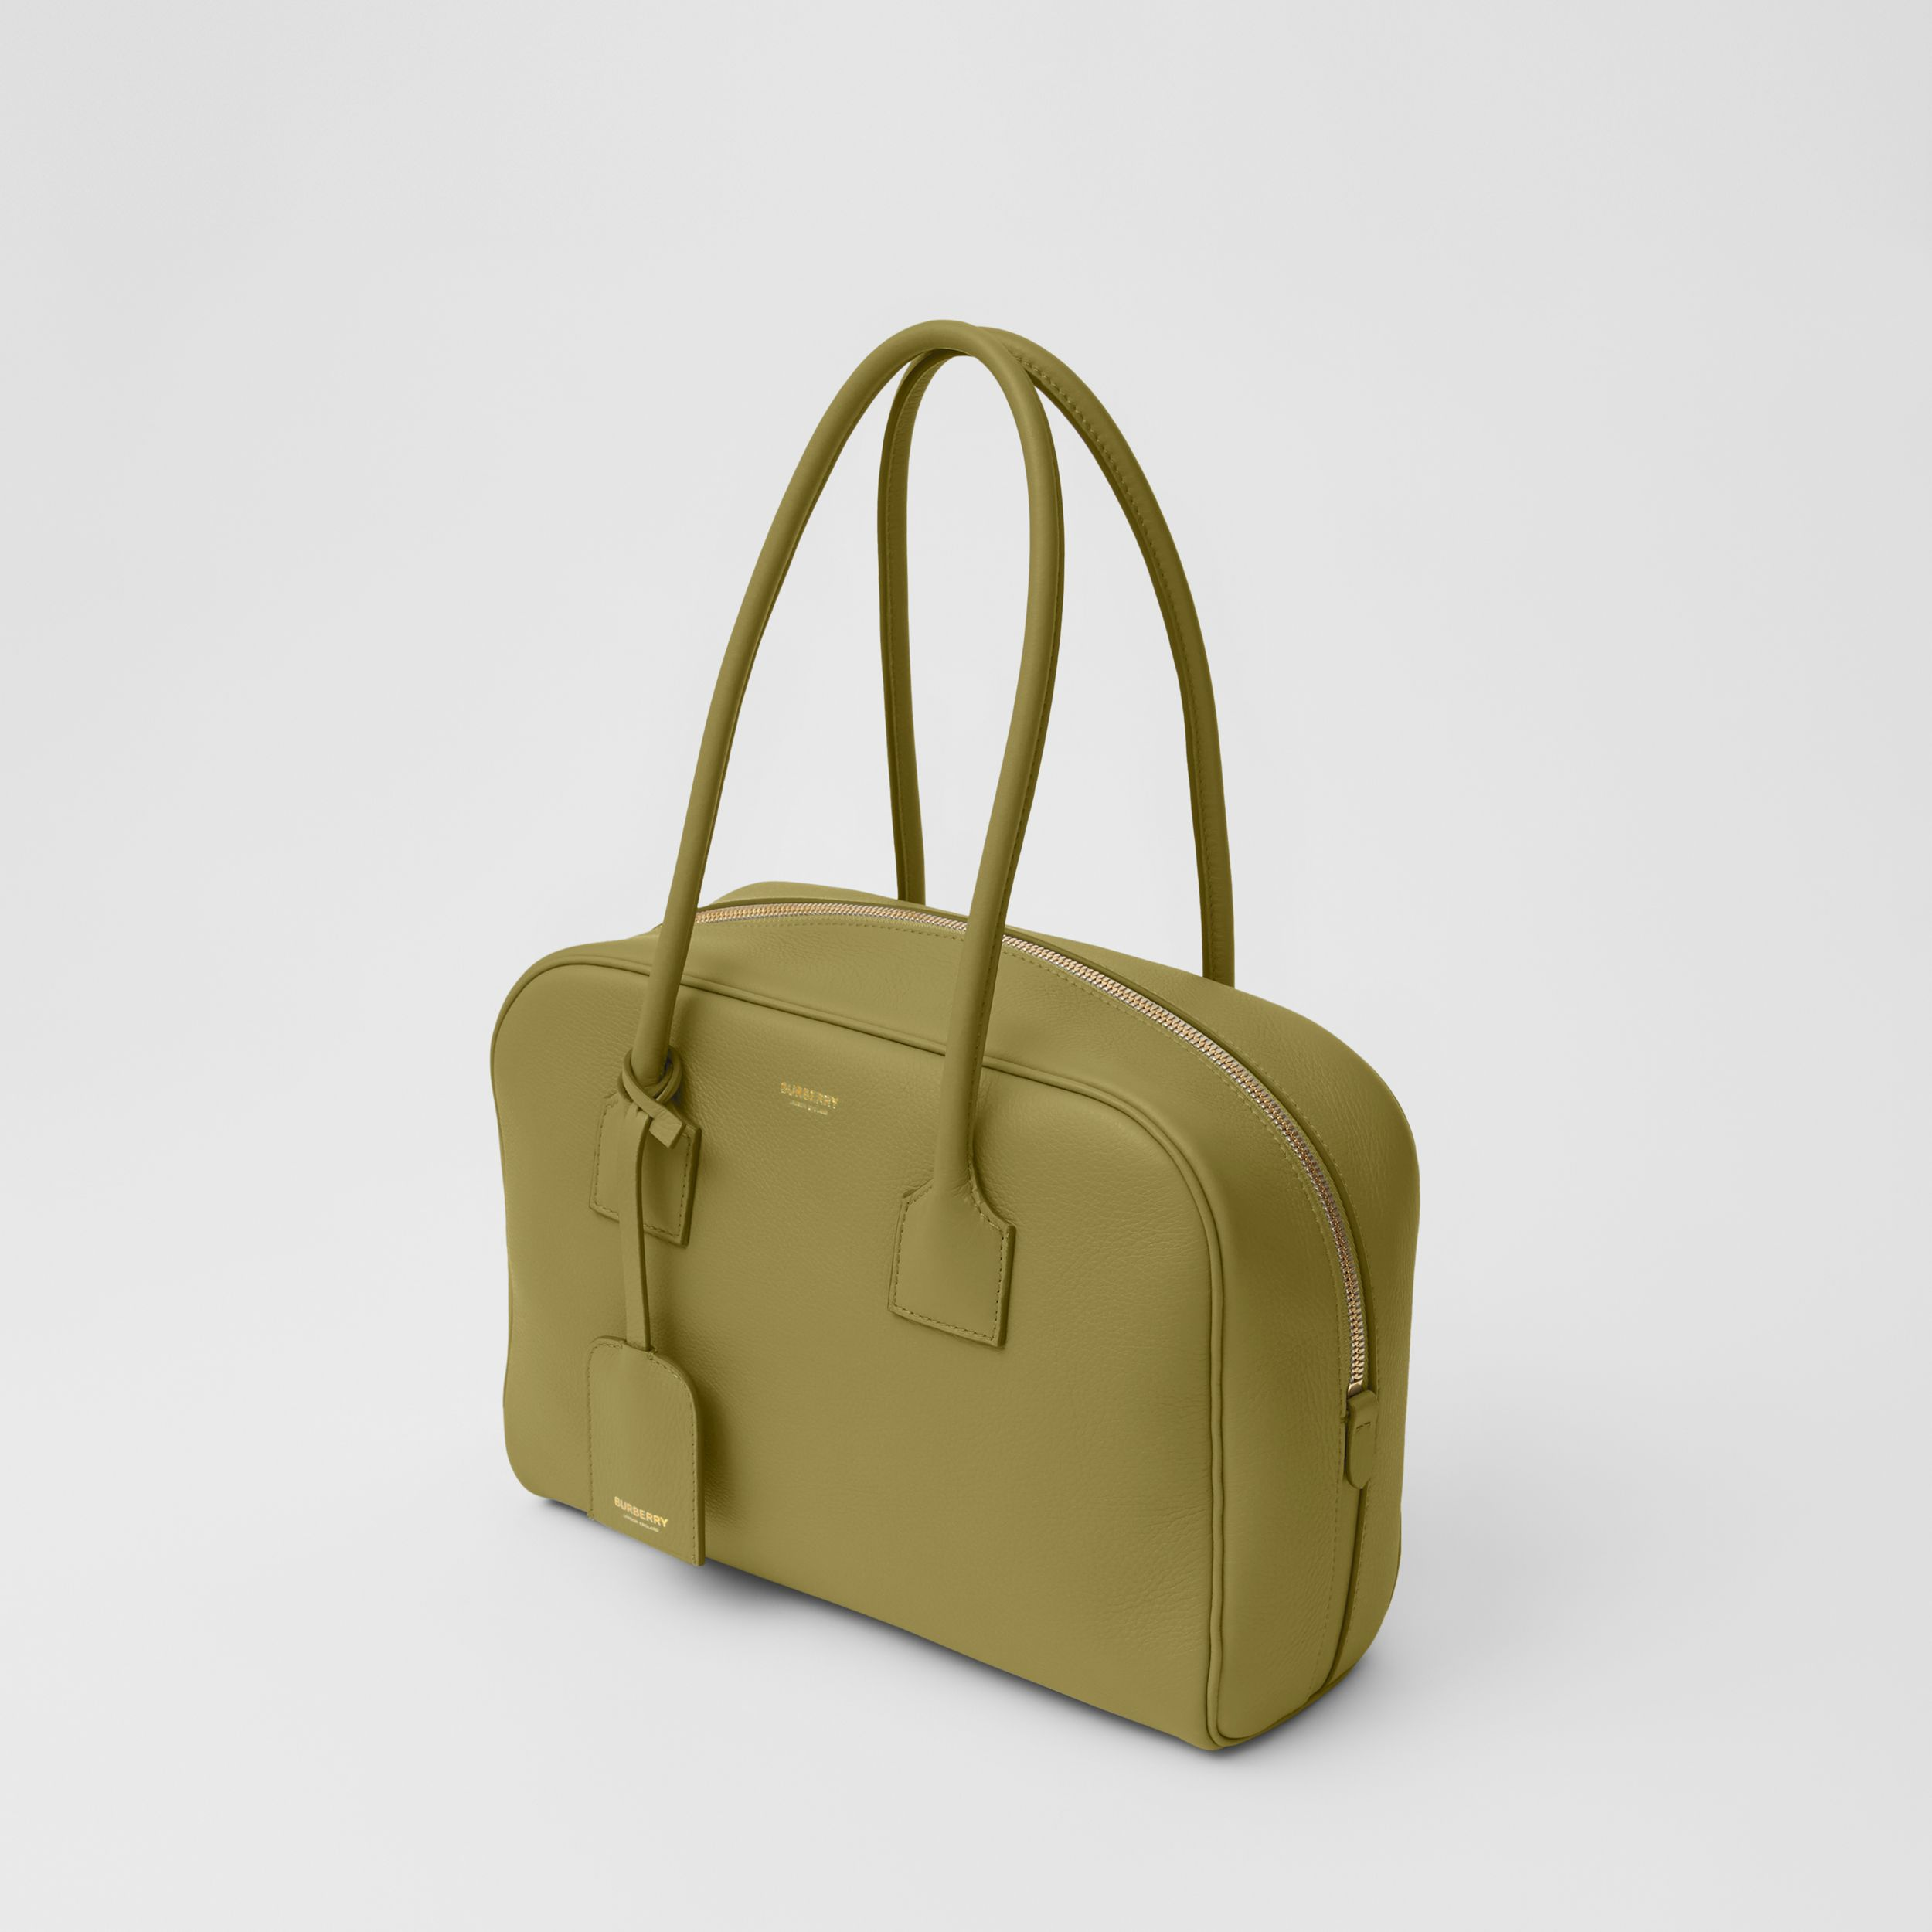 Medium Leather Half Cube Bag in Juniper Green - Women | Burberry Singapore - 4